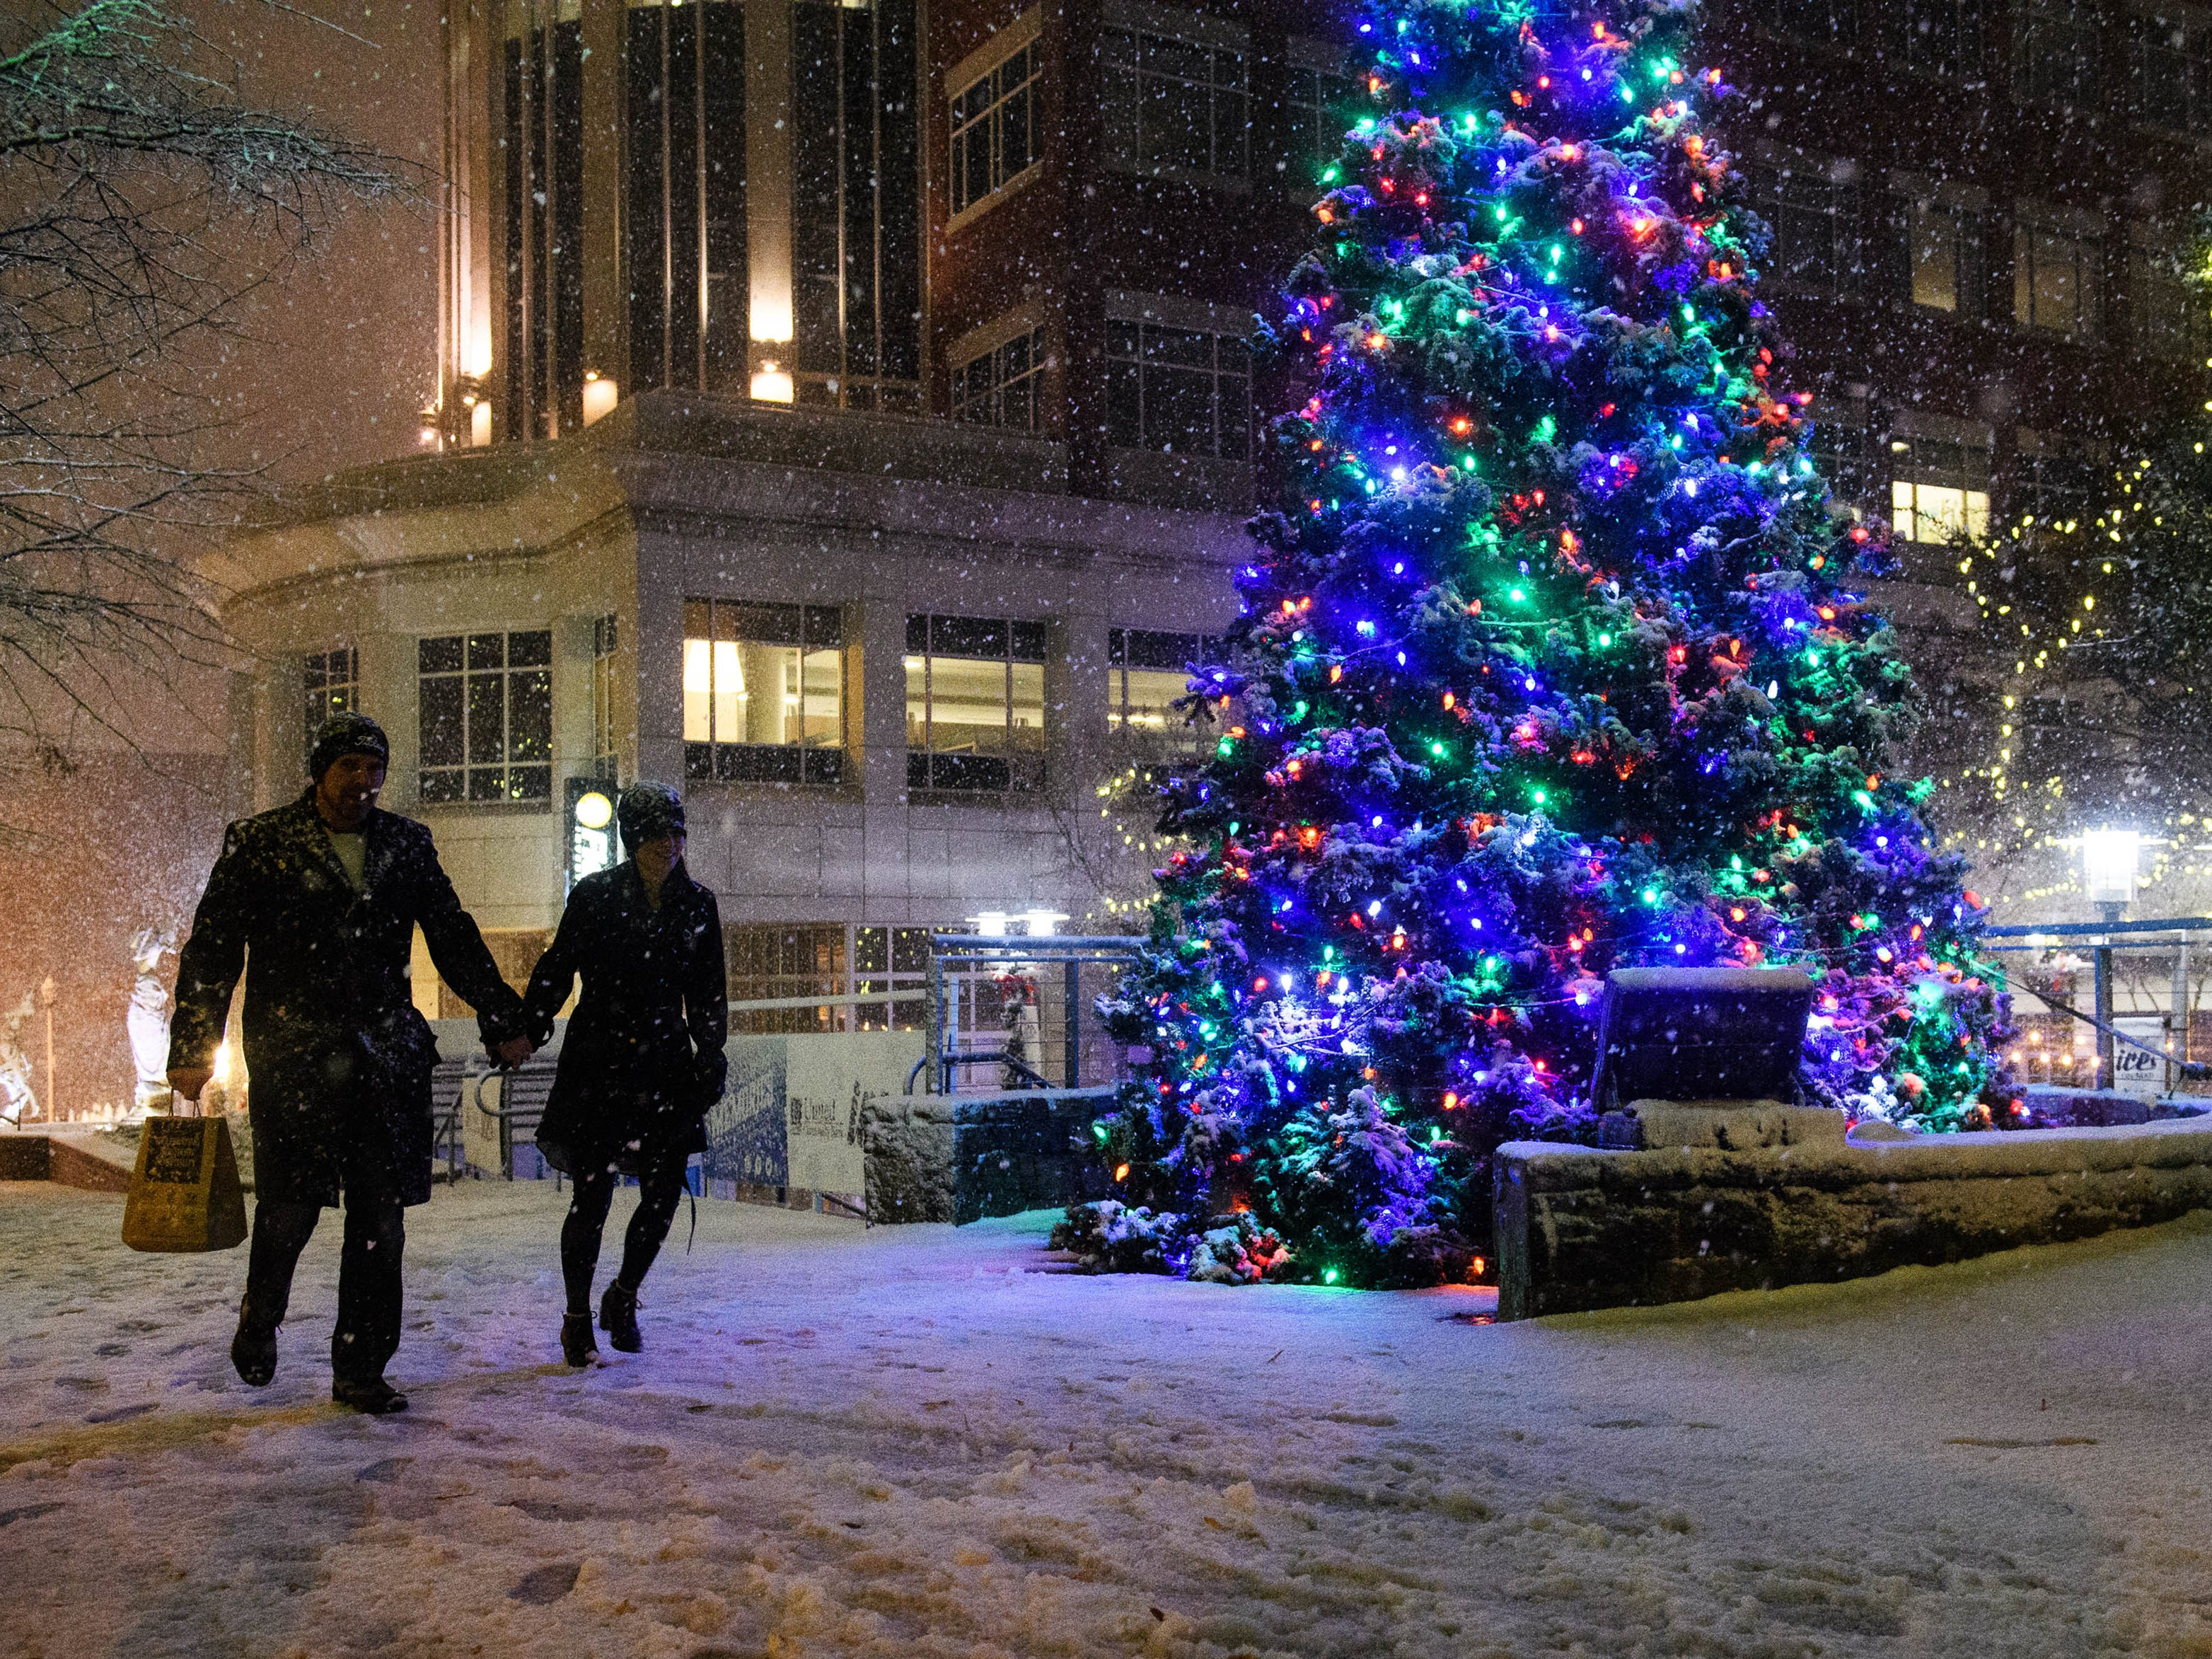 Chad and Shannan Ackerman walk down Main Street as snow begins to fall in Greenville, S.C., on Dec. 9.